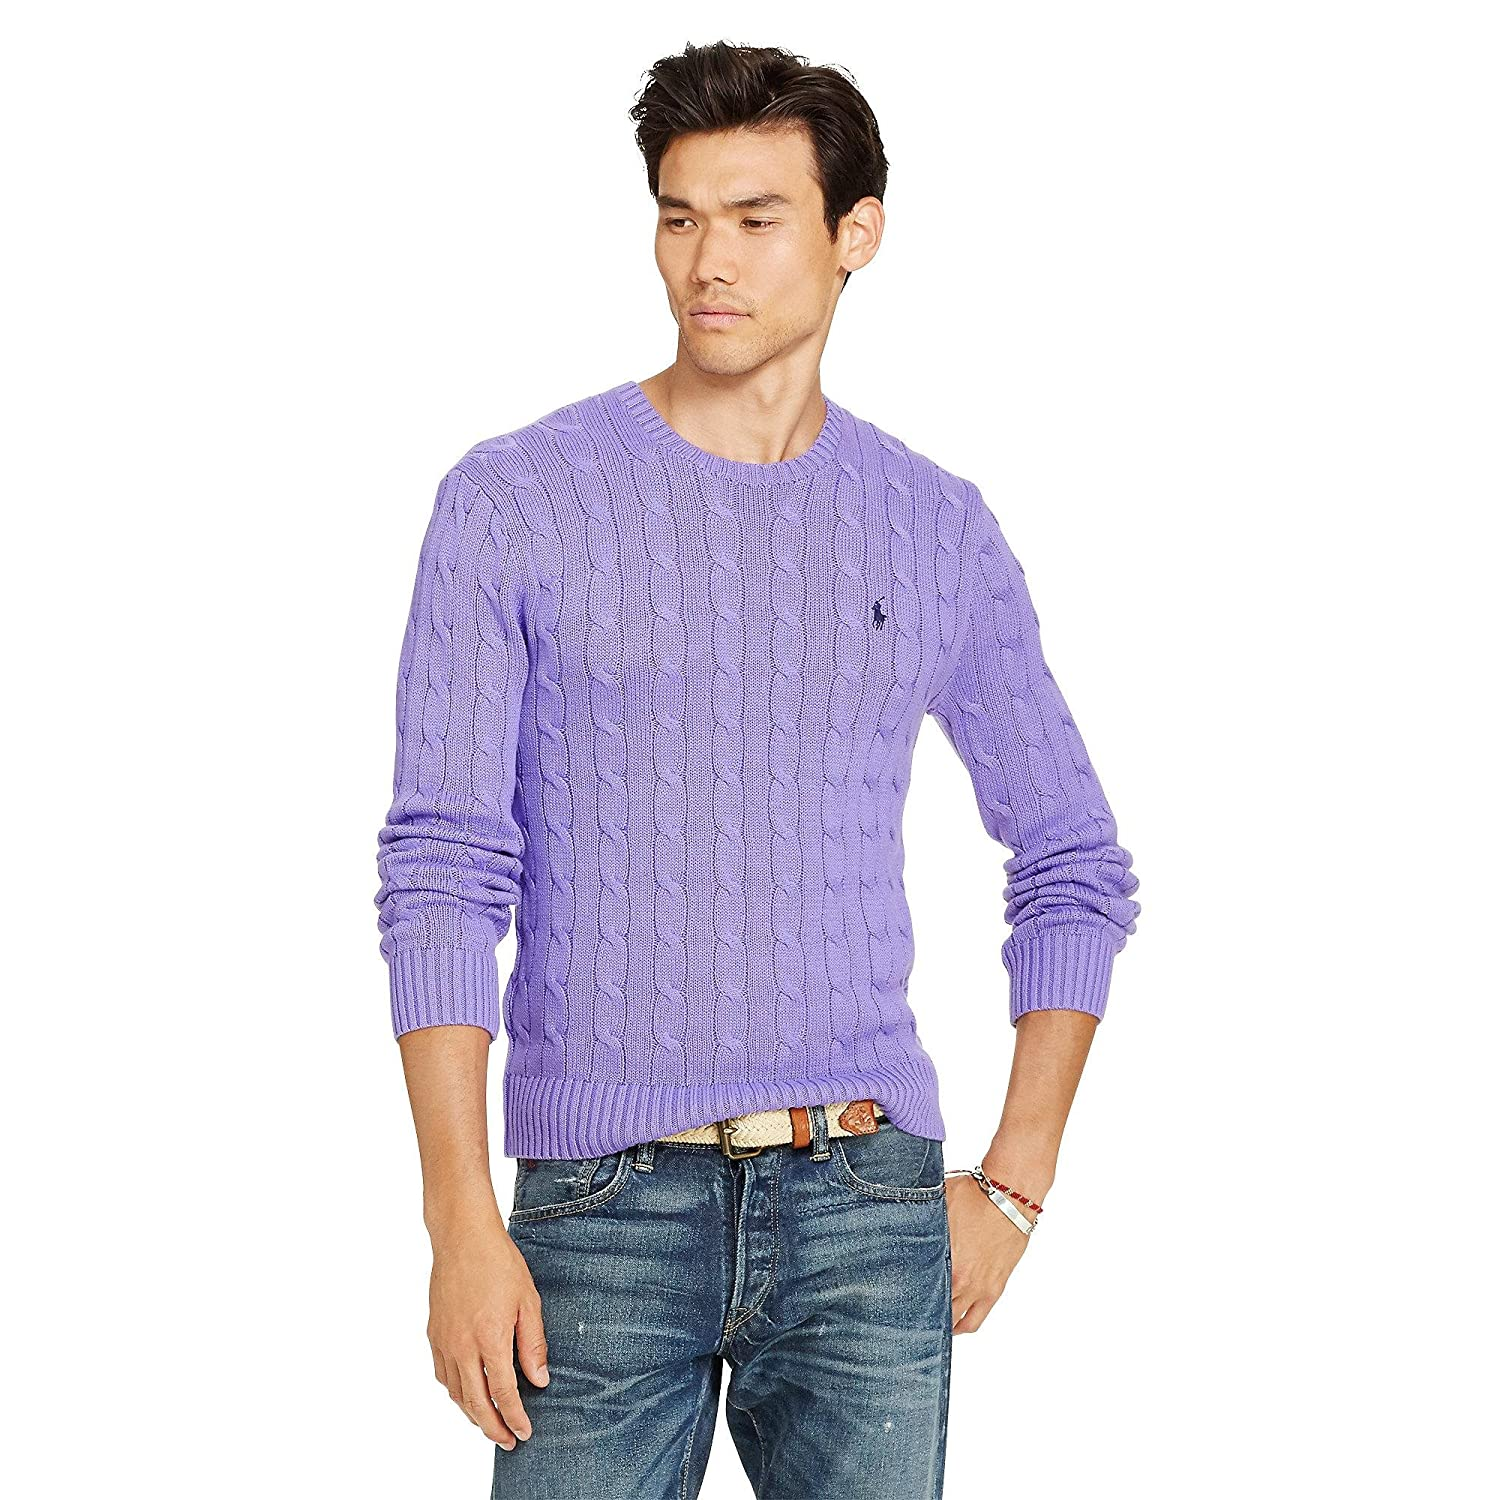 9c4302024ec Polo Ralph Lauren Men s Pony Cable Knit Crewneck Sweater